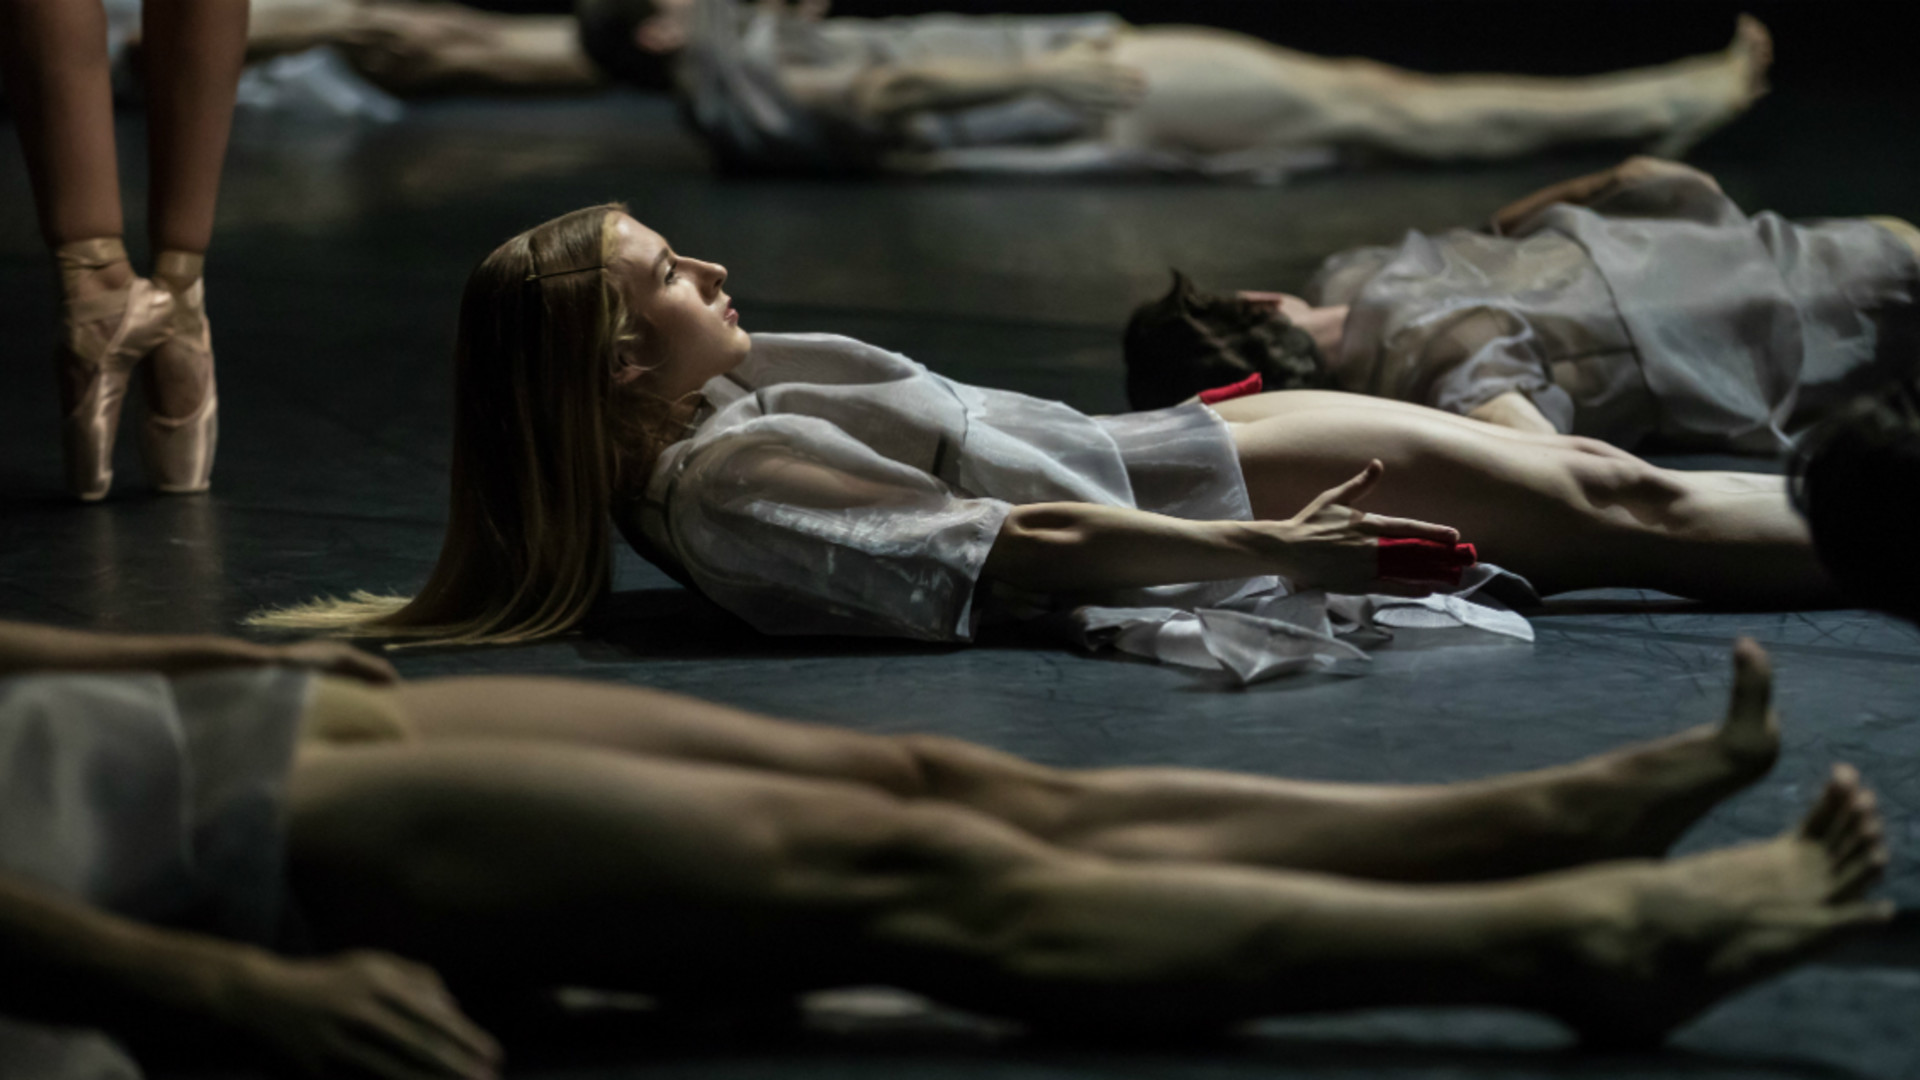 Dancers dressed in white lying on the floor with a dancers feet in pointe shoes to the side of the frame.